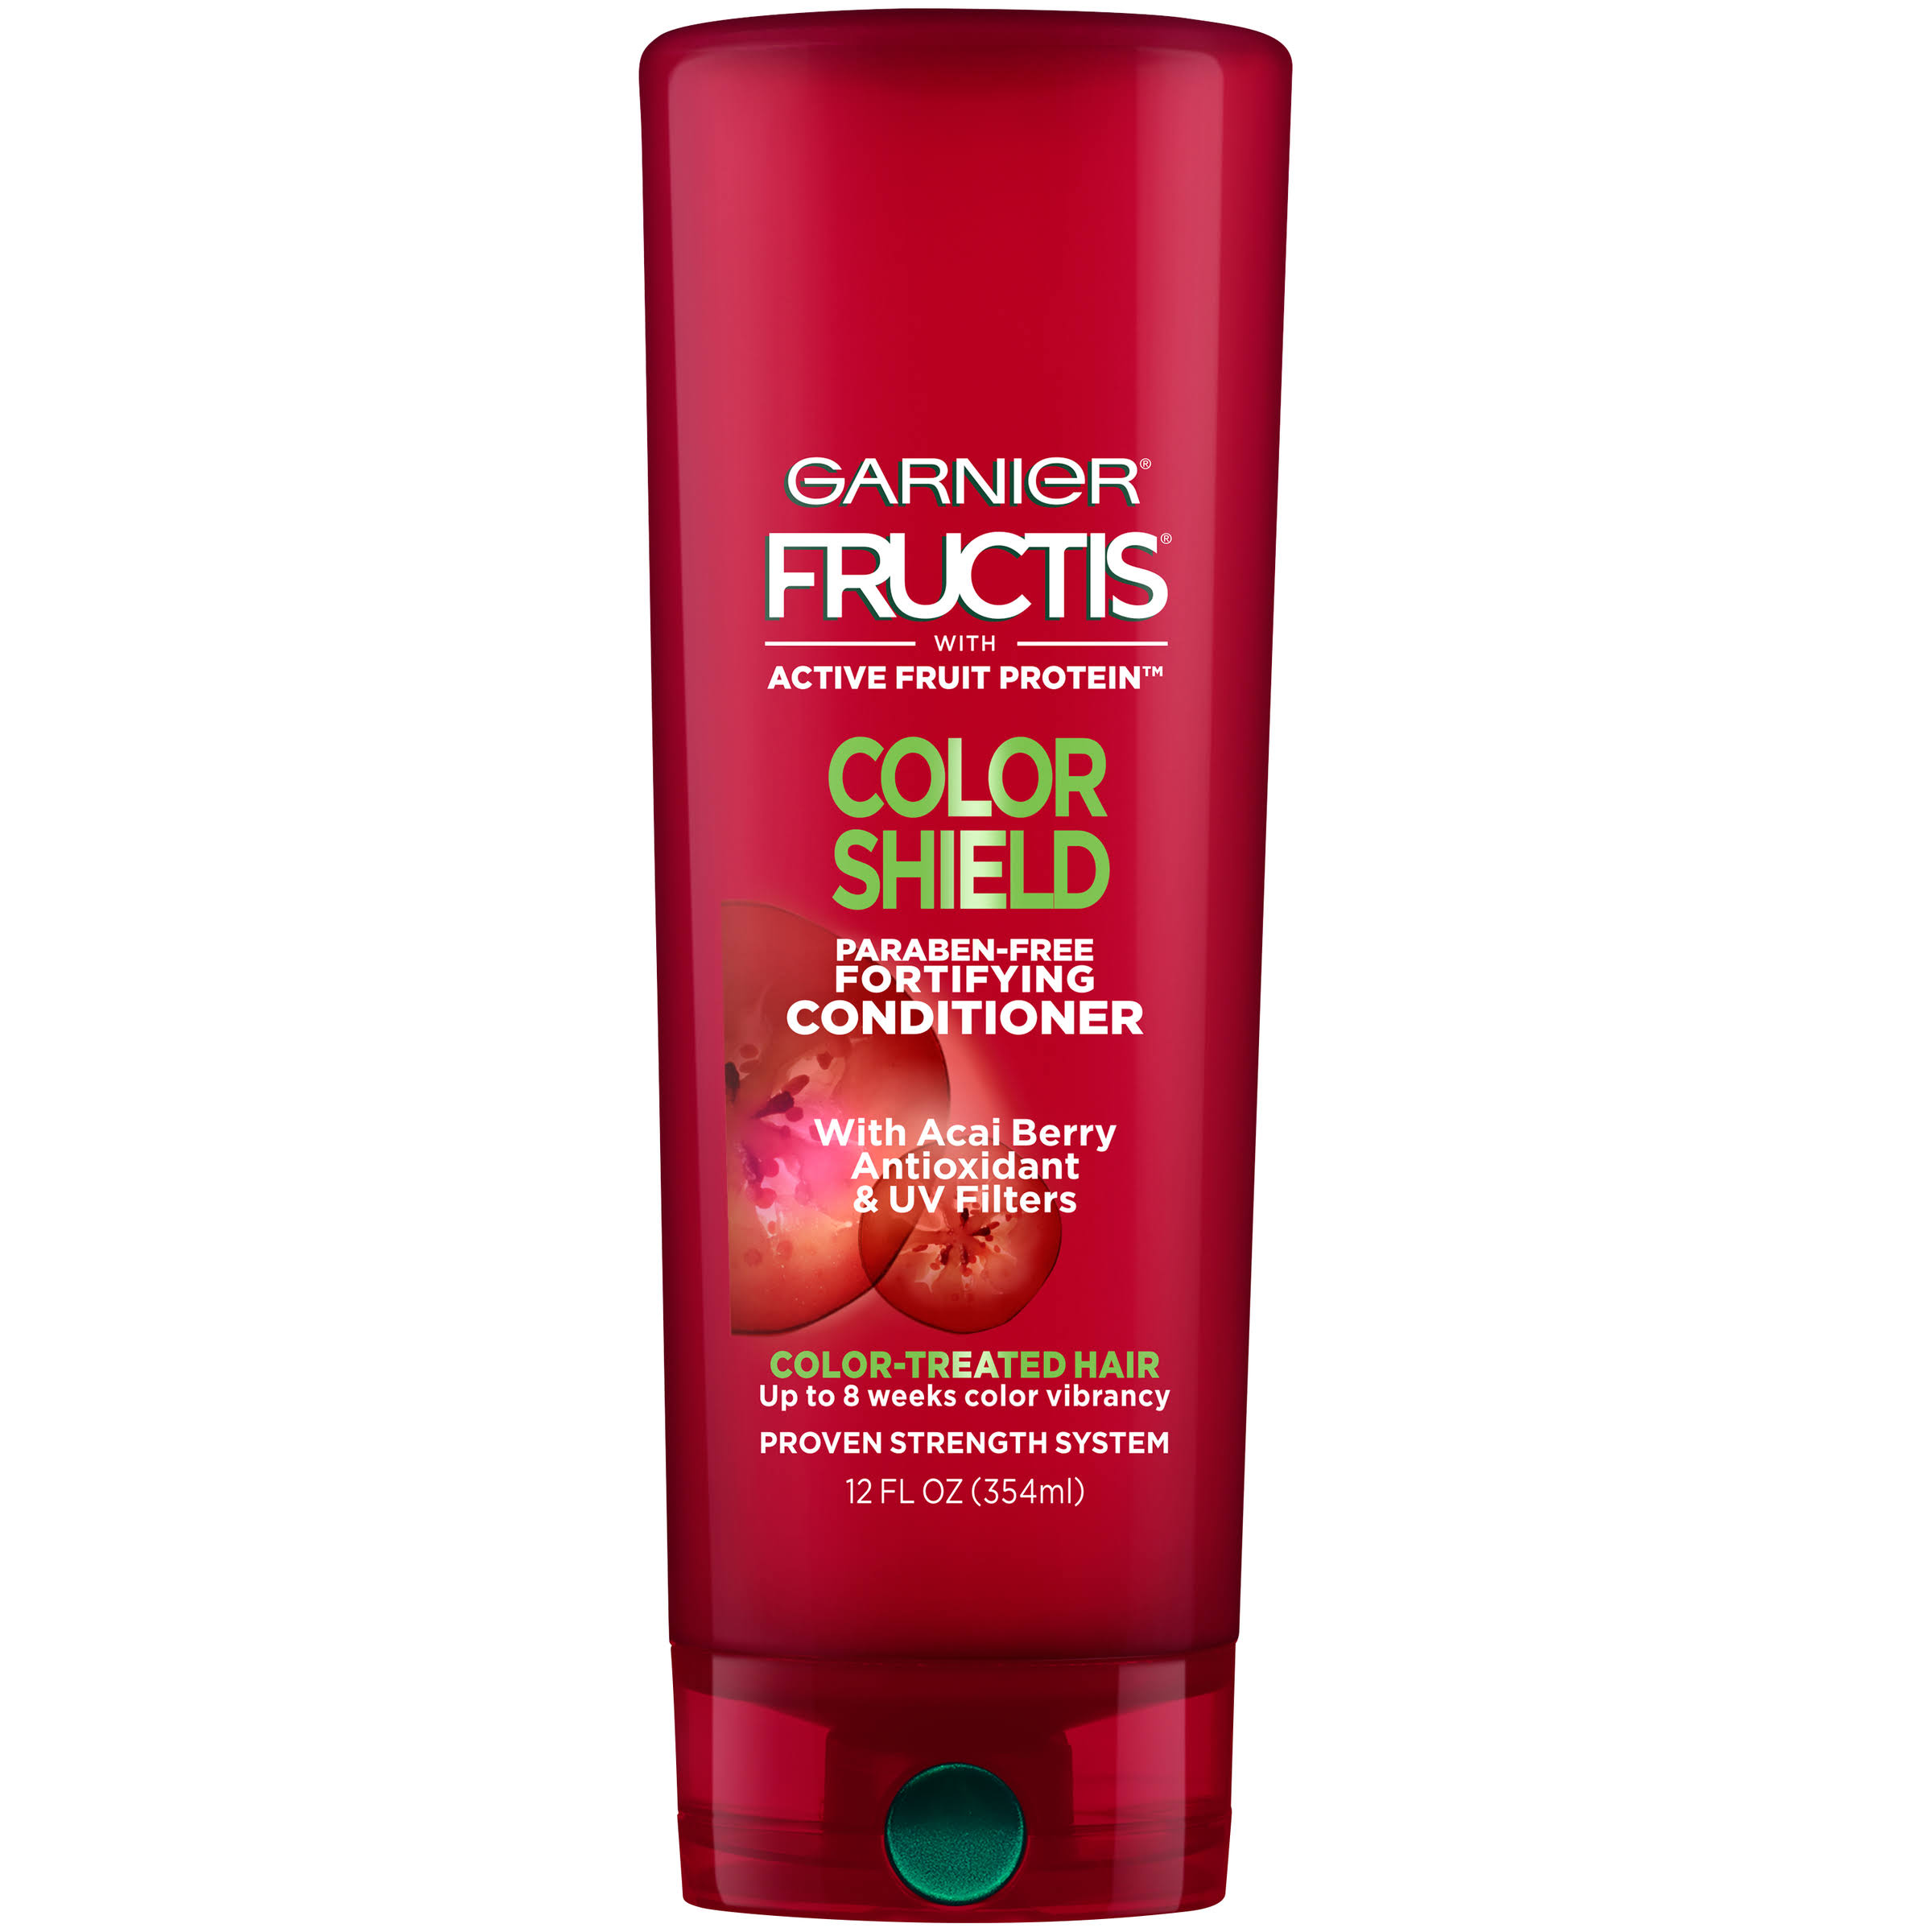 Garnier Fructis Fortifying Conditioner - 12oz, Color Shield, with Acai Berry